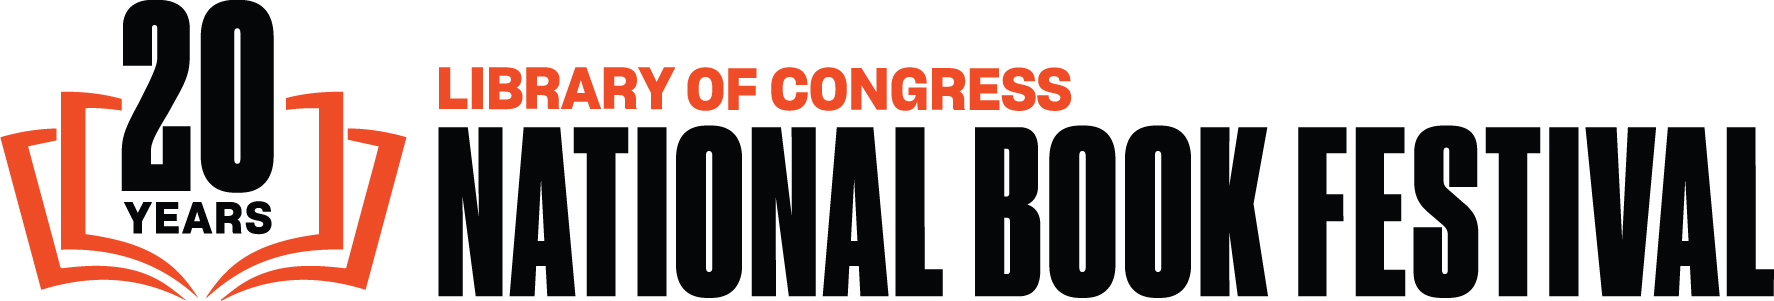 "Graphic banner with text, ""20 years Library of Congress National Book Festival"""